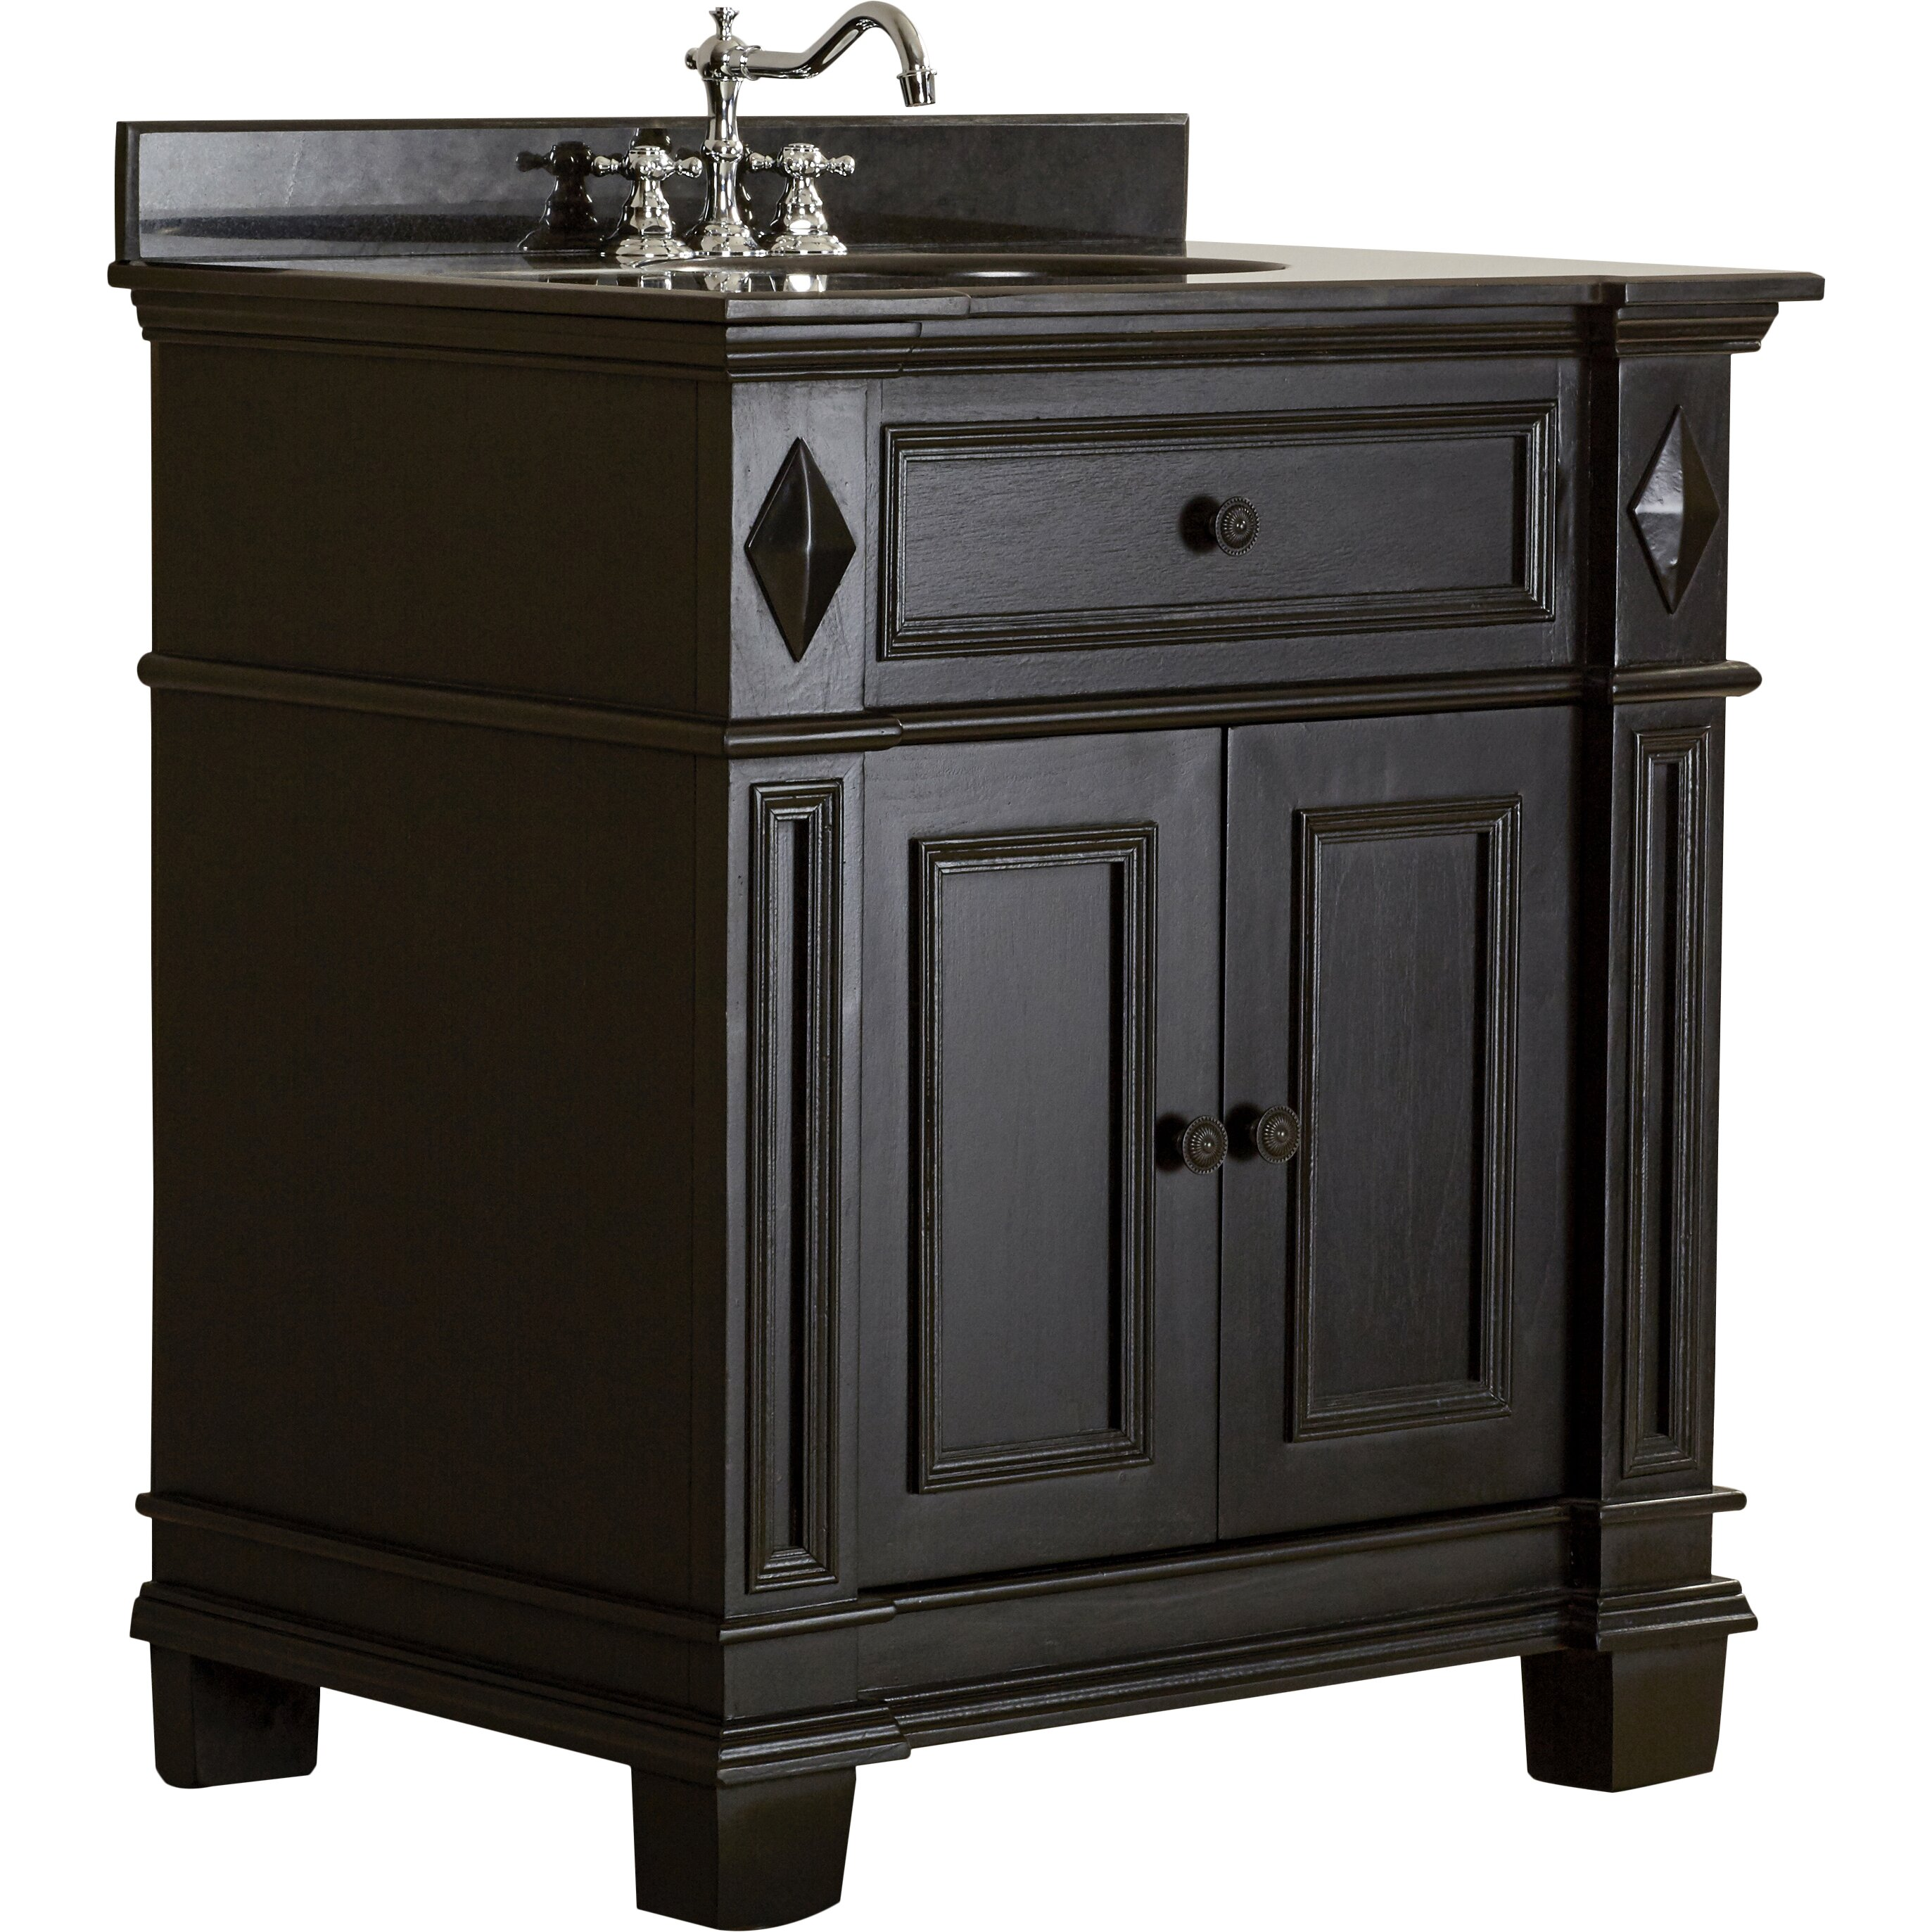 Darby Home Co Shoen 31quot; Single Bathroom Vanity Set amp; Reviews  Wayfair